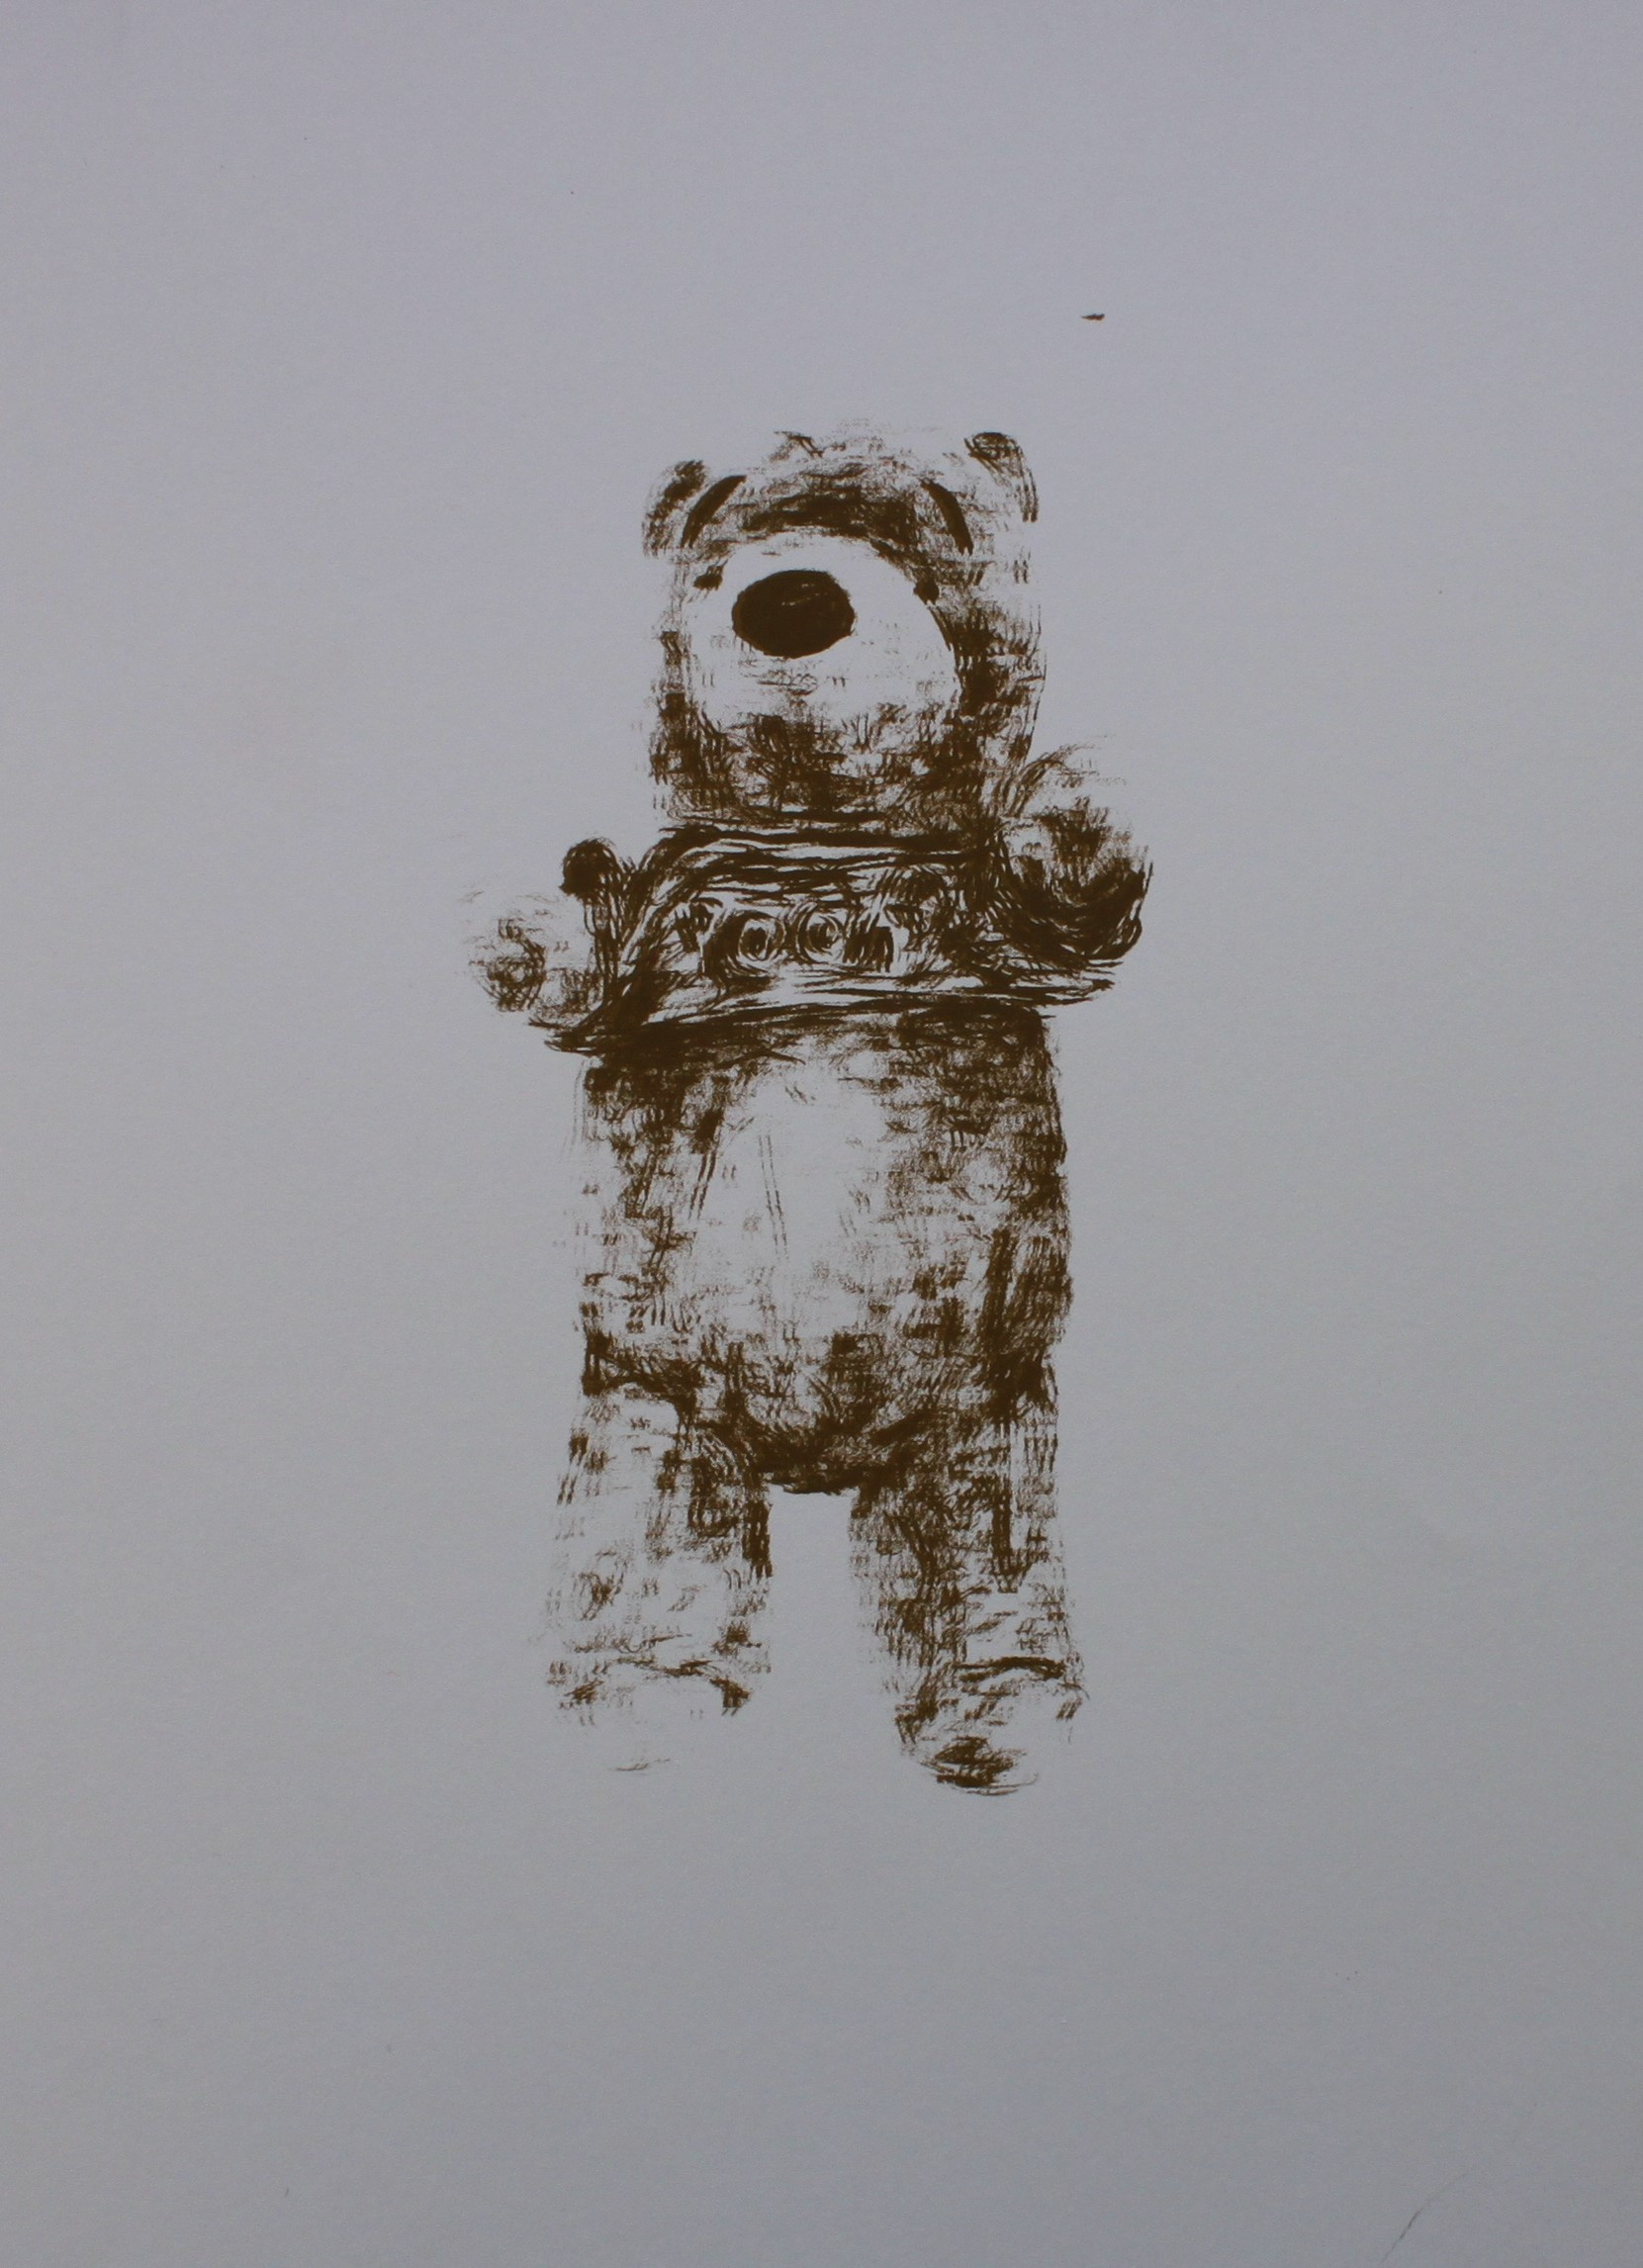 'Pooh' 3, 2015, Screenprint, Edition of 3, 29x42cm